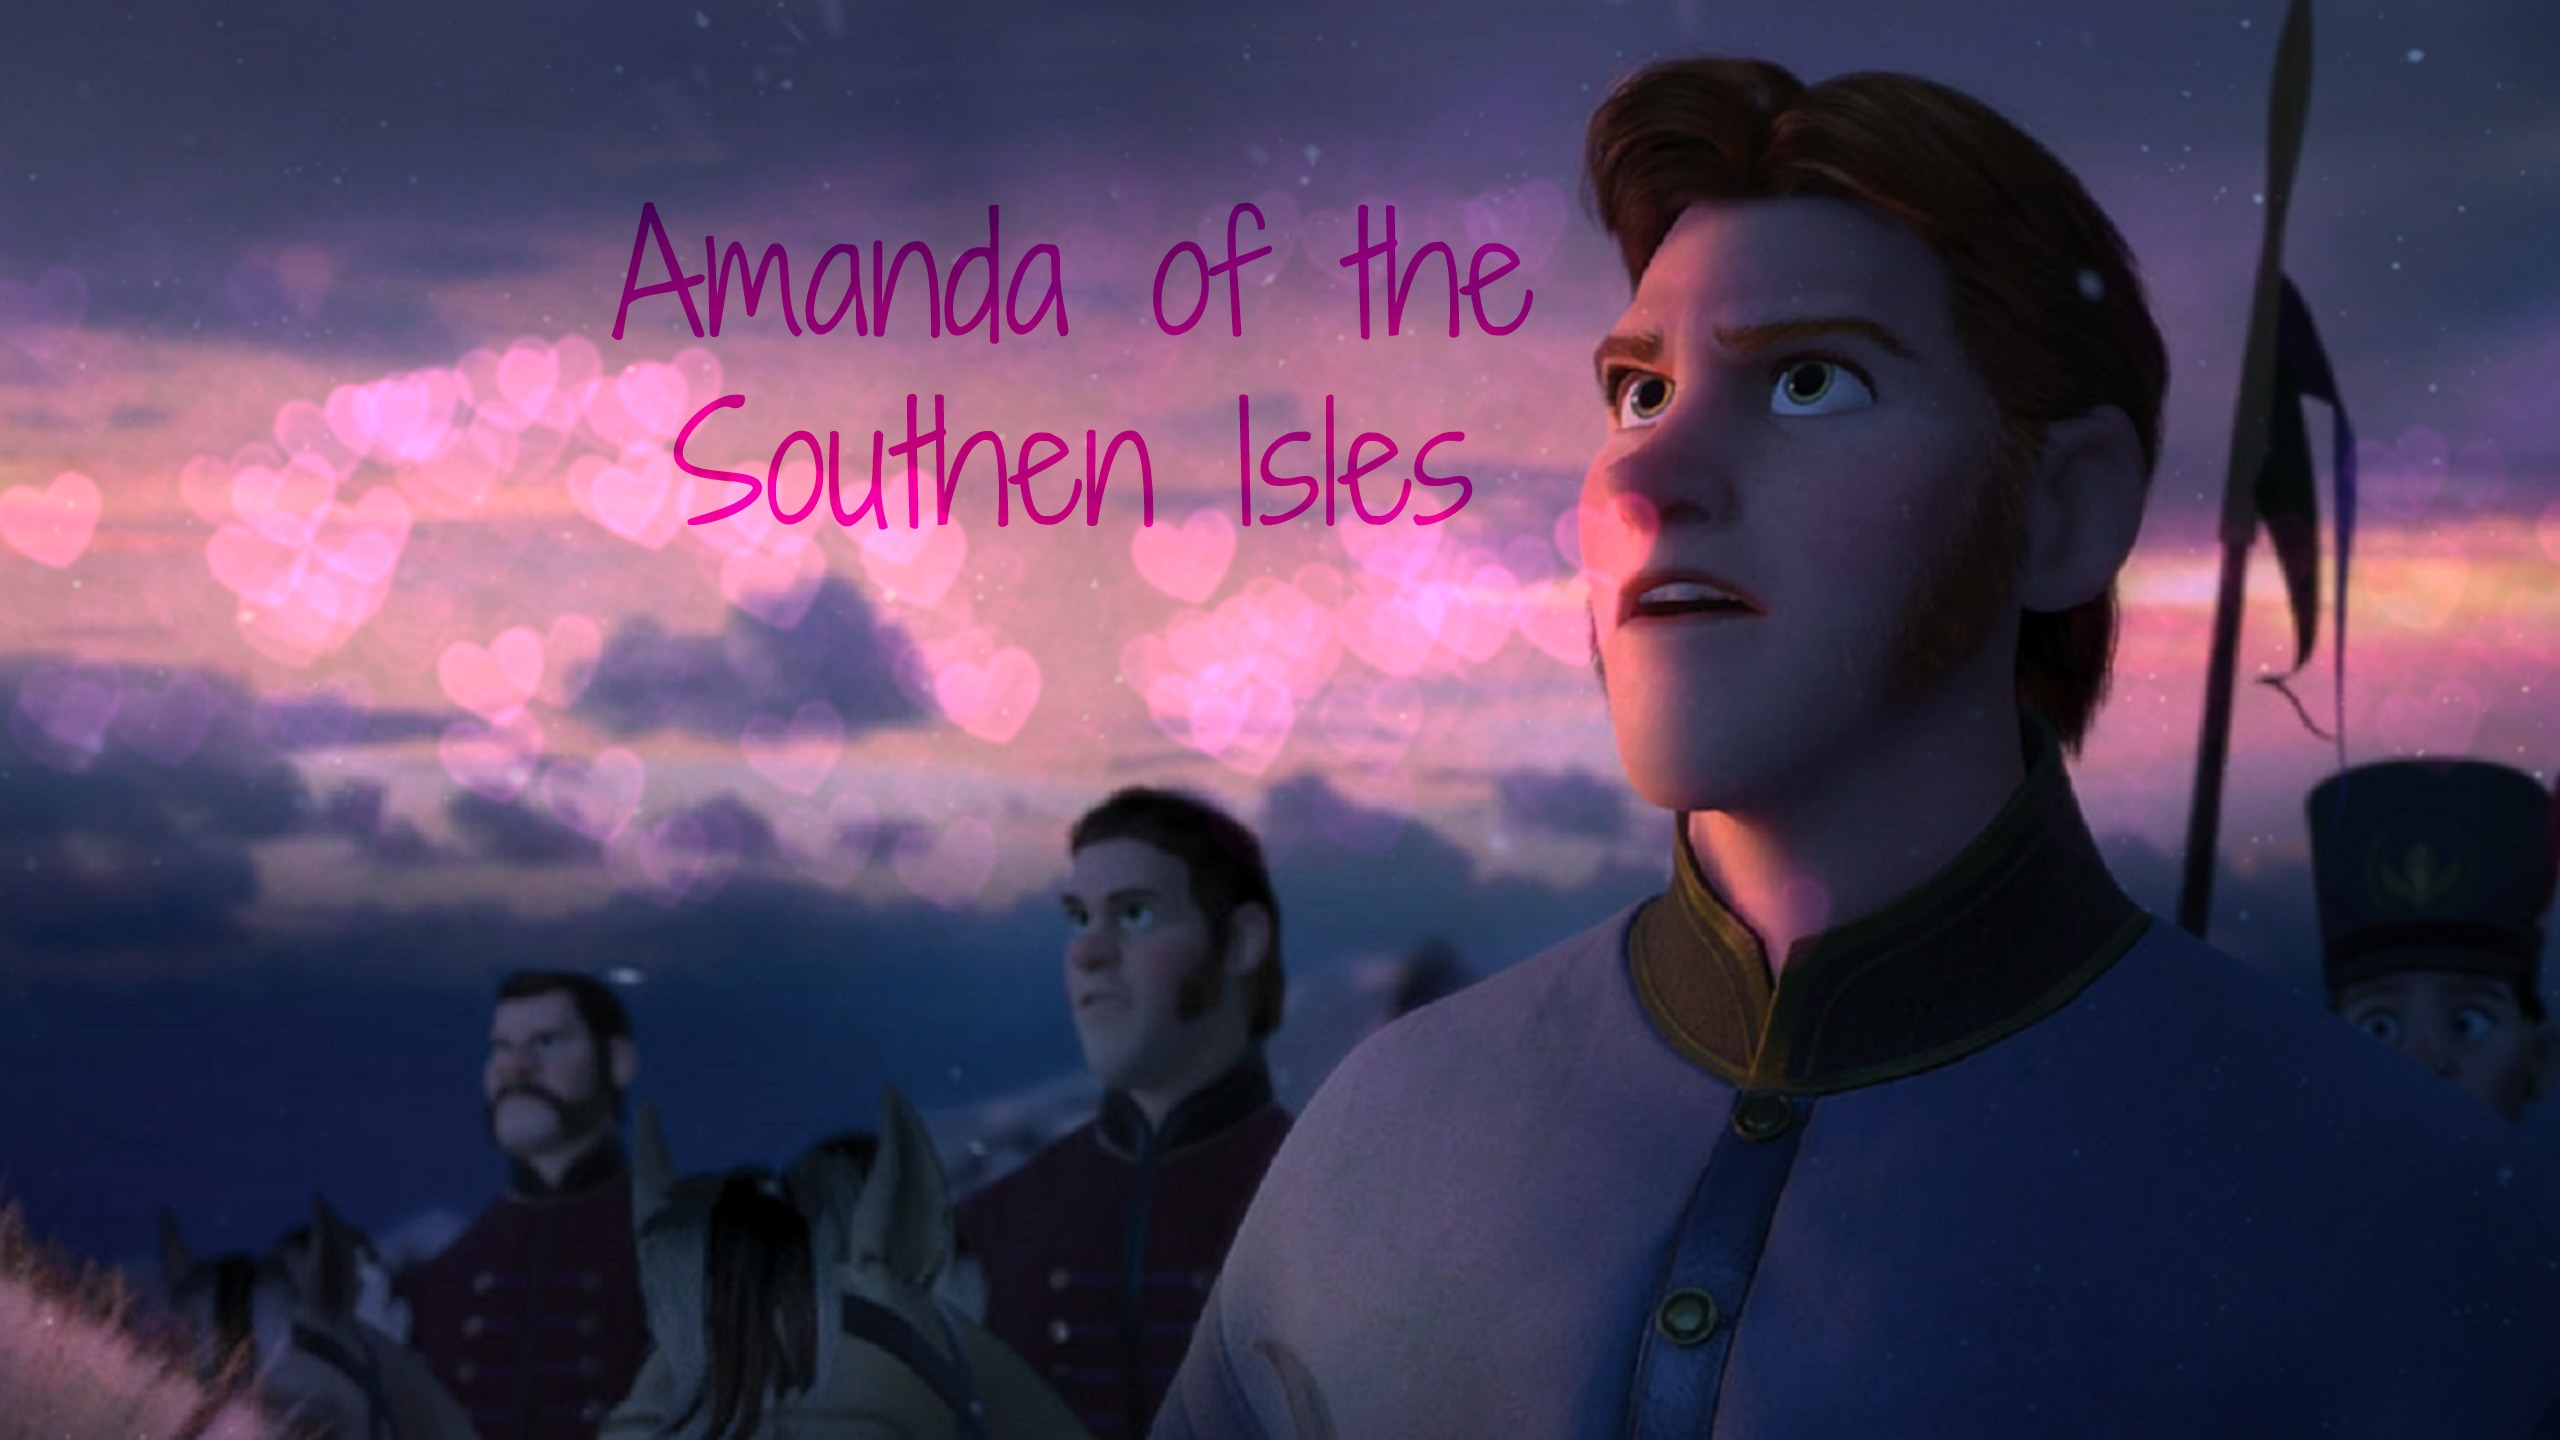 Princess of the Southern Isles